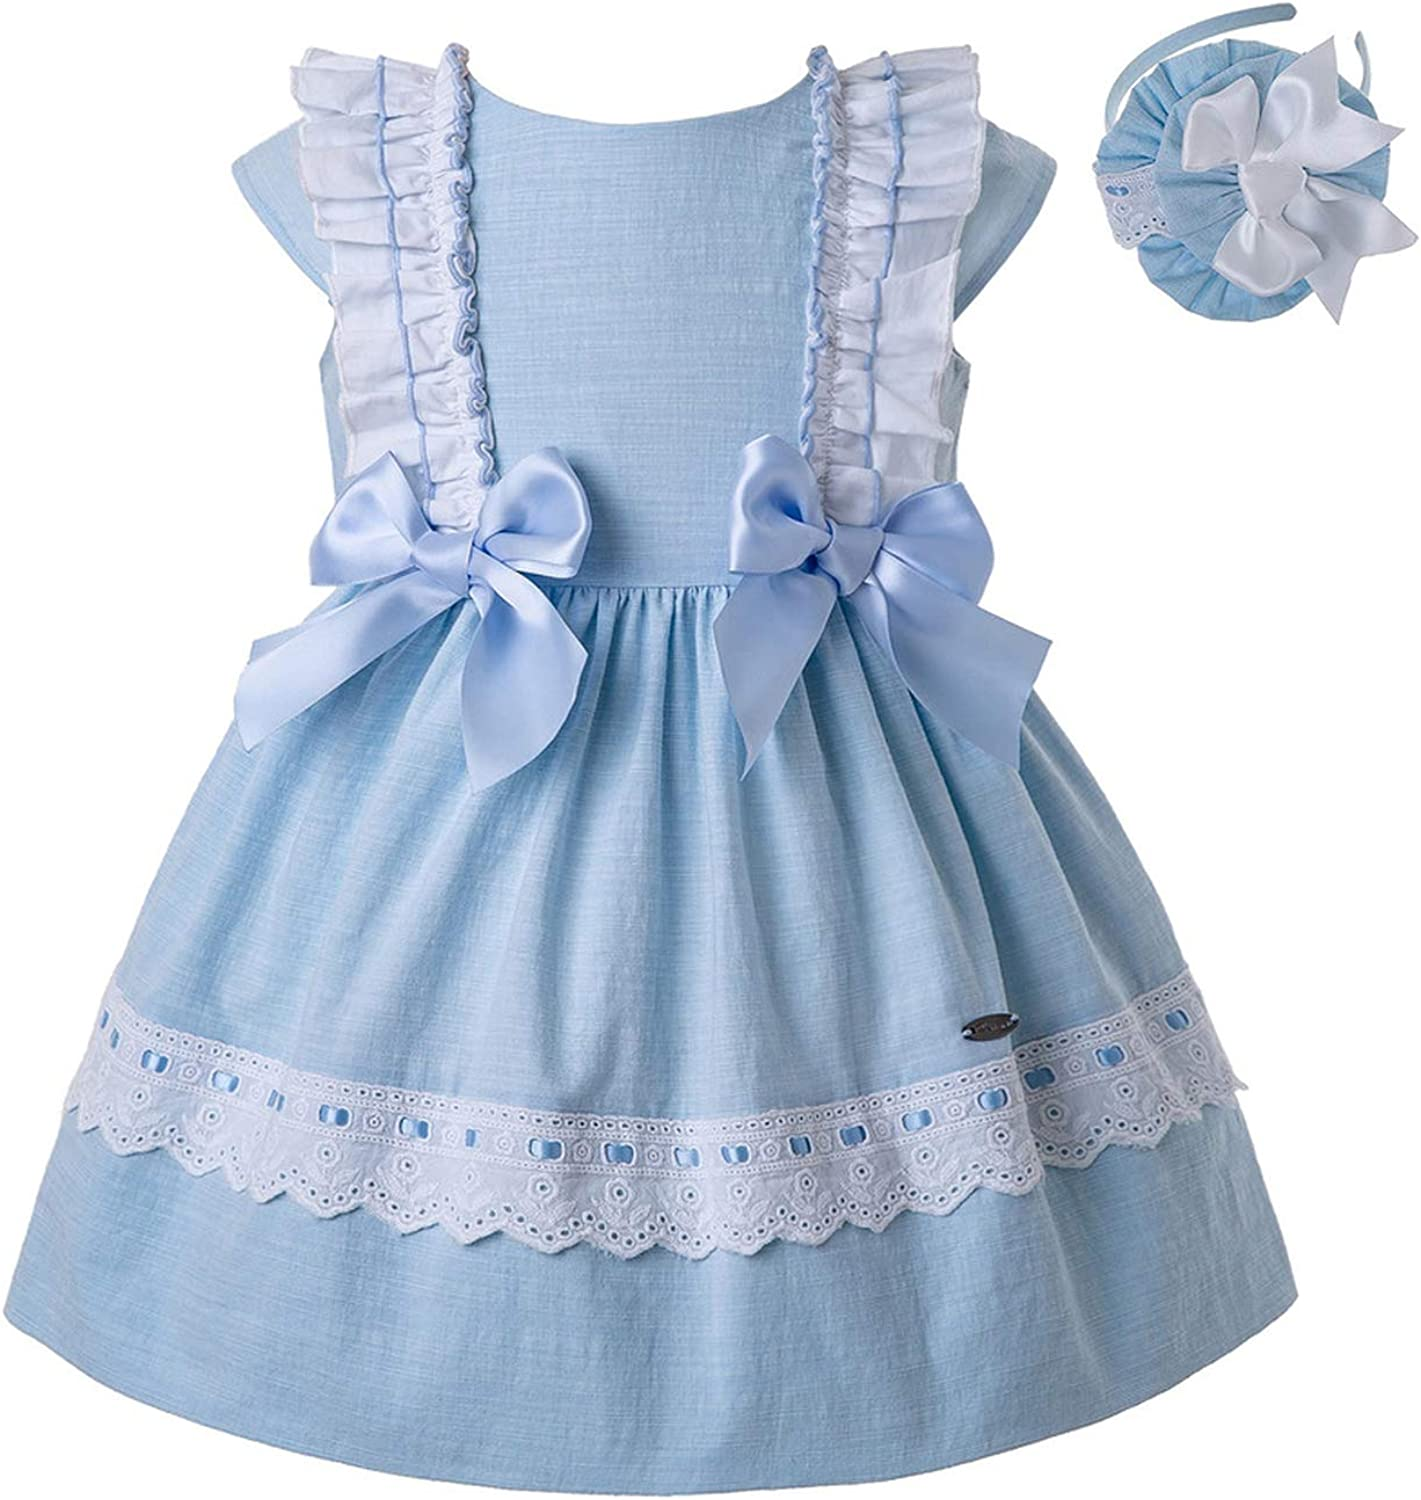 New bluee Baby Girls Dress with Bow Infant Kids Dress with Head G-Dmgd201-C144,Sky bluee,12M